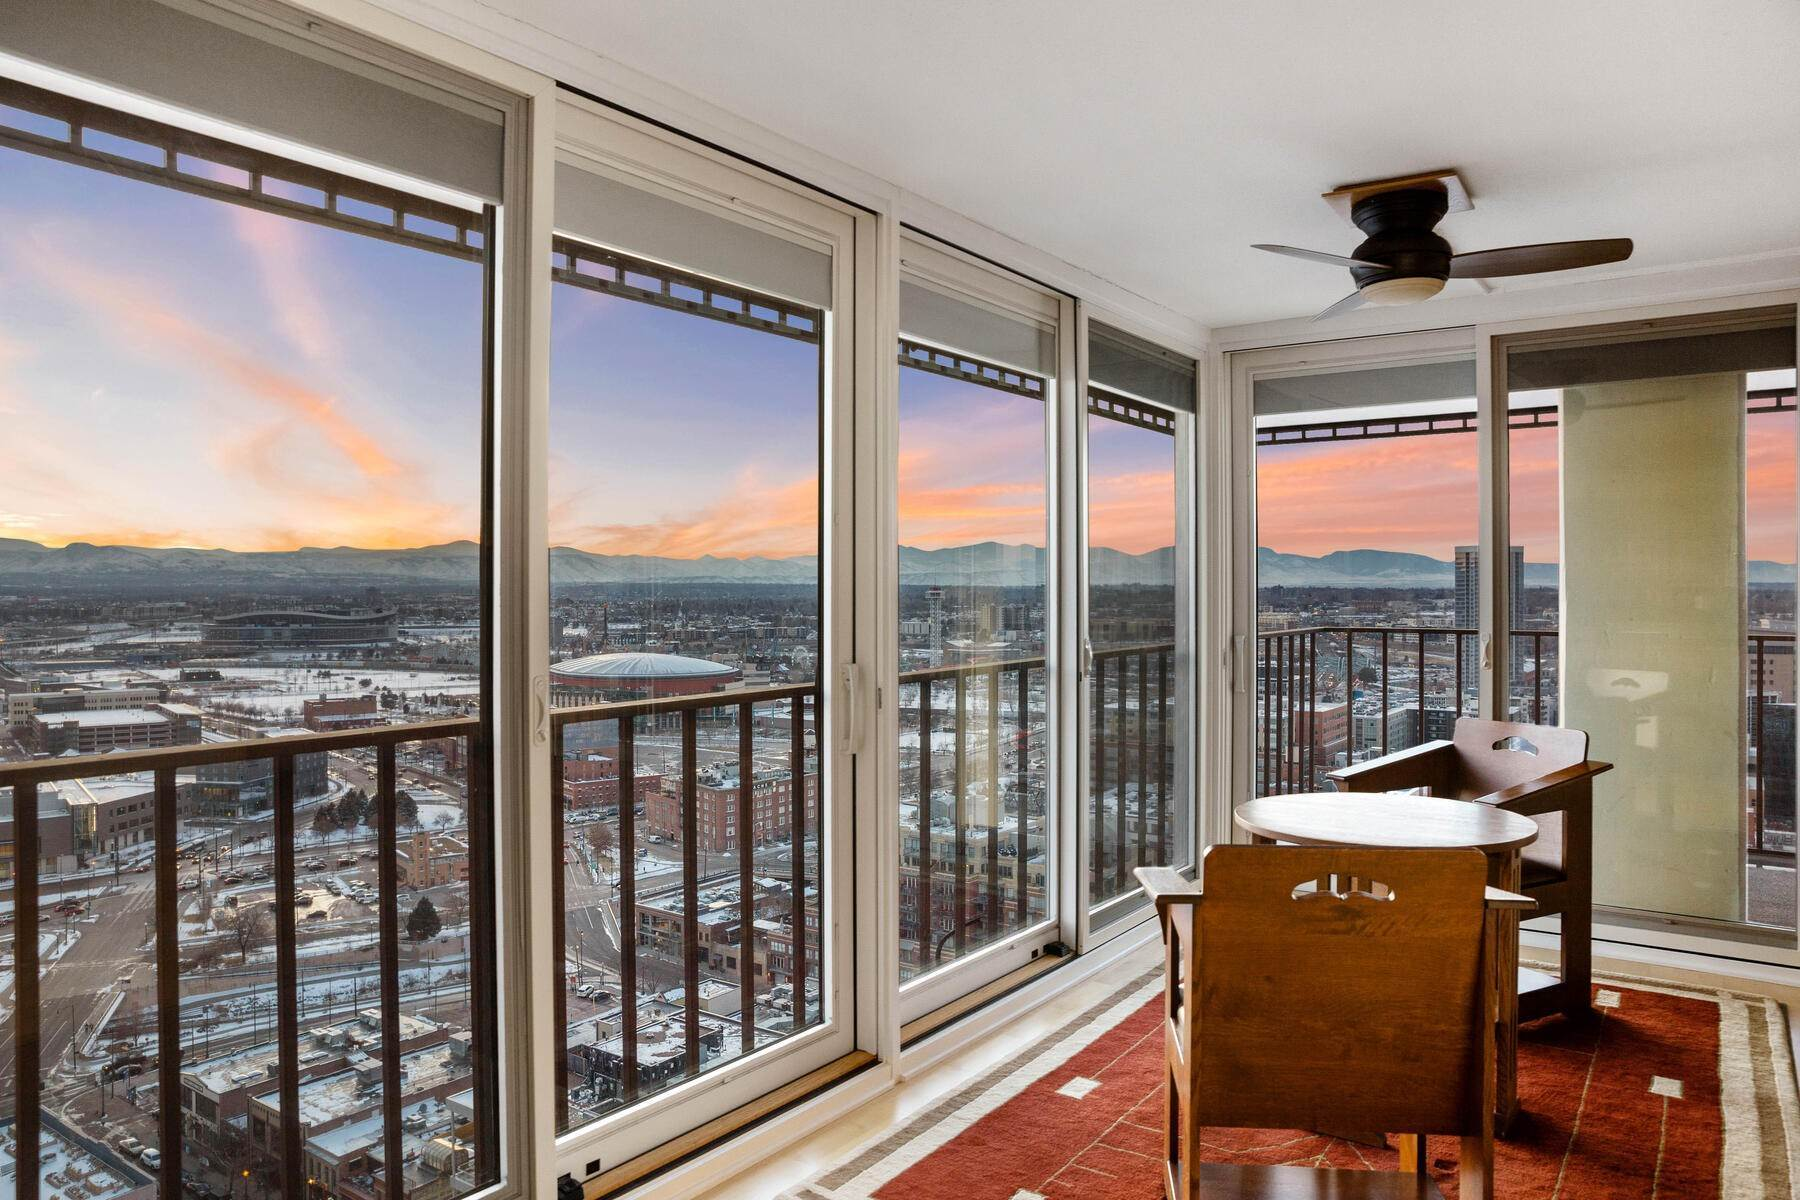 27. Condominiums at IMPRESSIVE FOREVER VIEWS HIGH ATOP THE CITY 1551 Larimer Street Unit #2701C Denver, Colorado 80202 United States